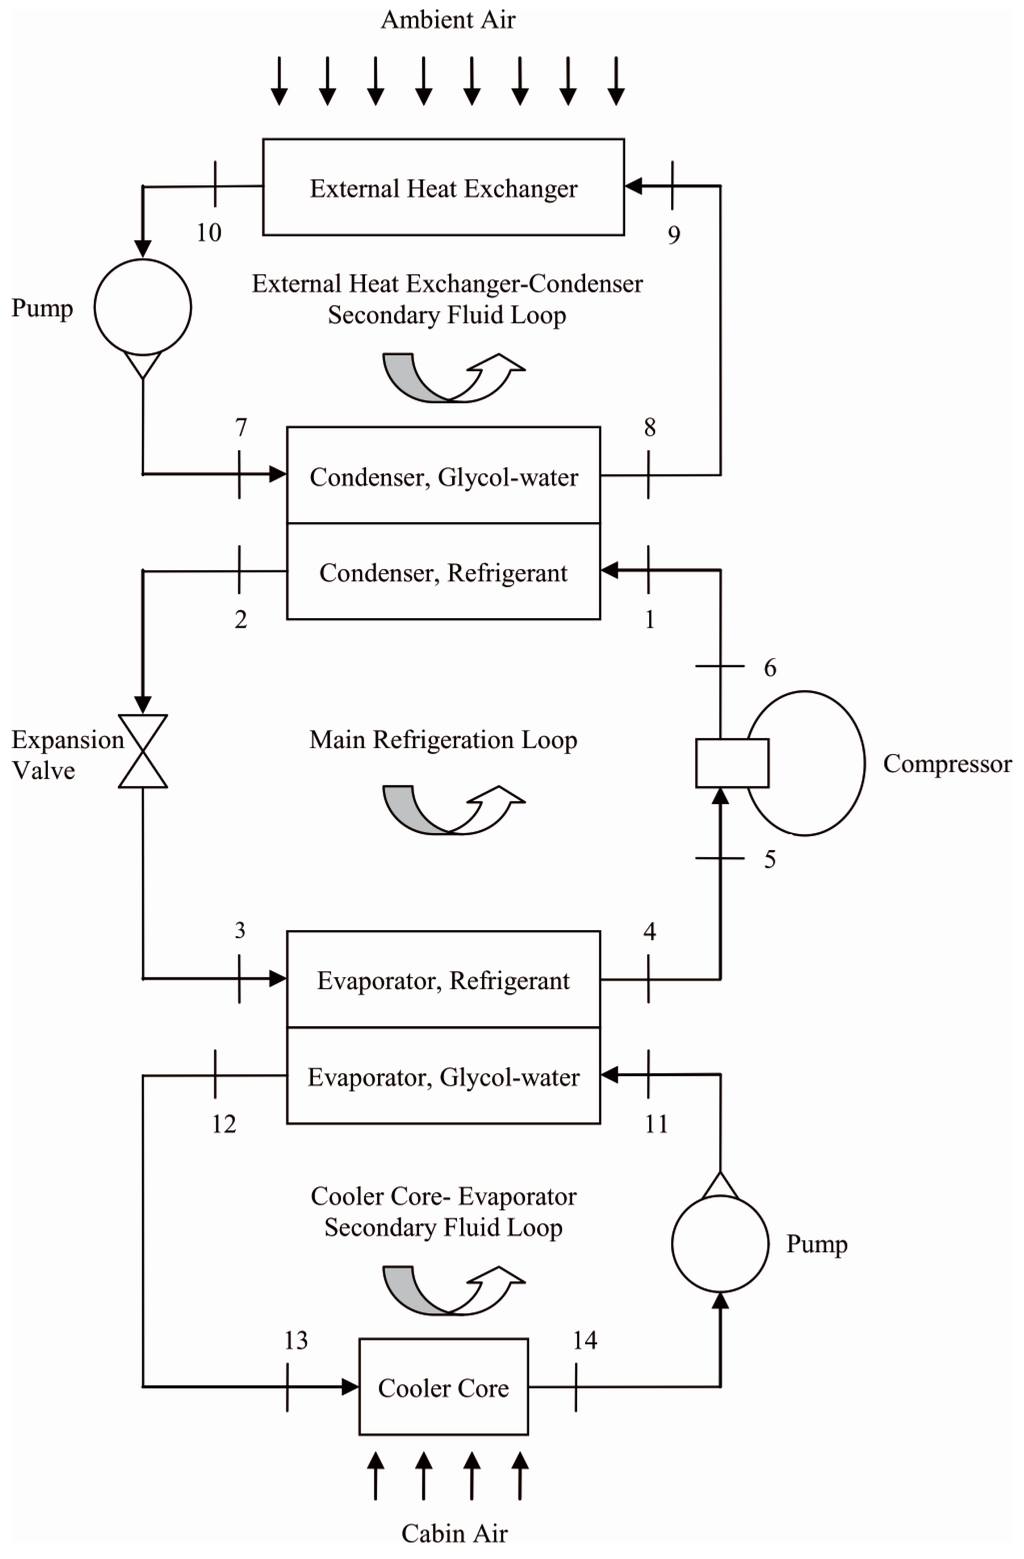 Energies Free Full Text Progress In Heat Pump Air Conditioning Led Light Bulb Circuit Diagram Besides Refrigeration 09 00240 G009 1024